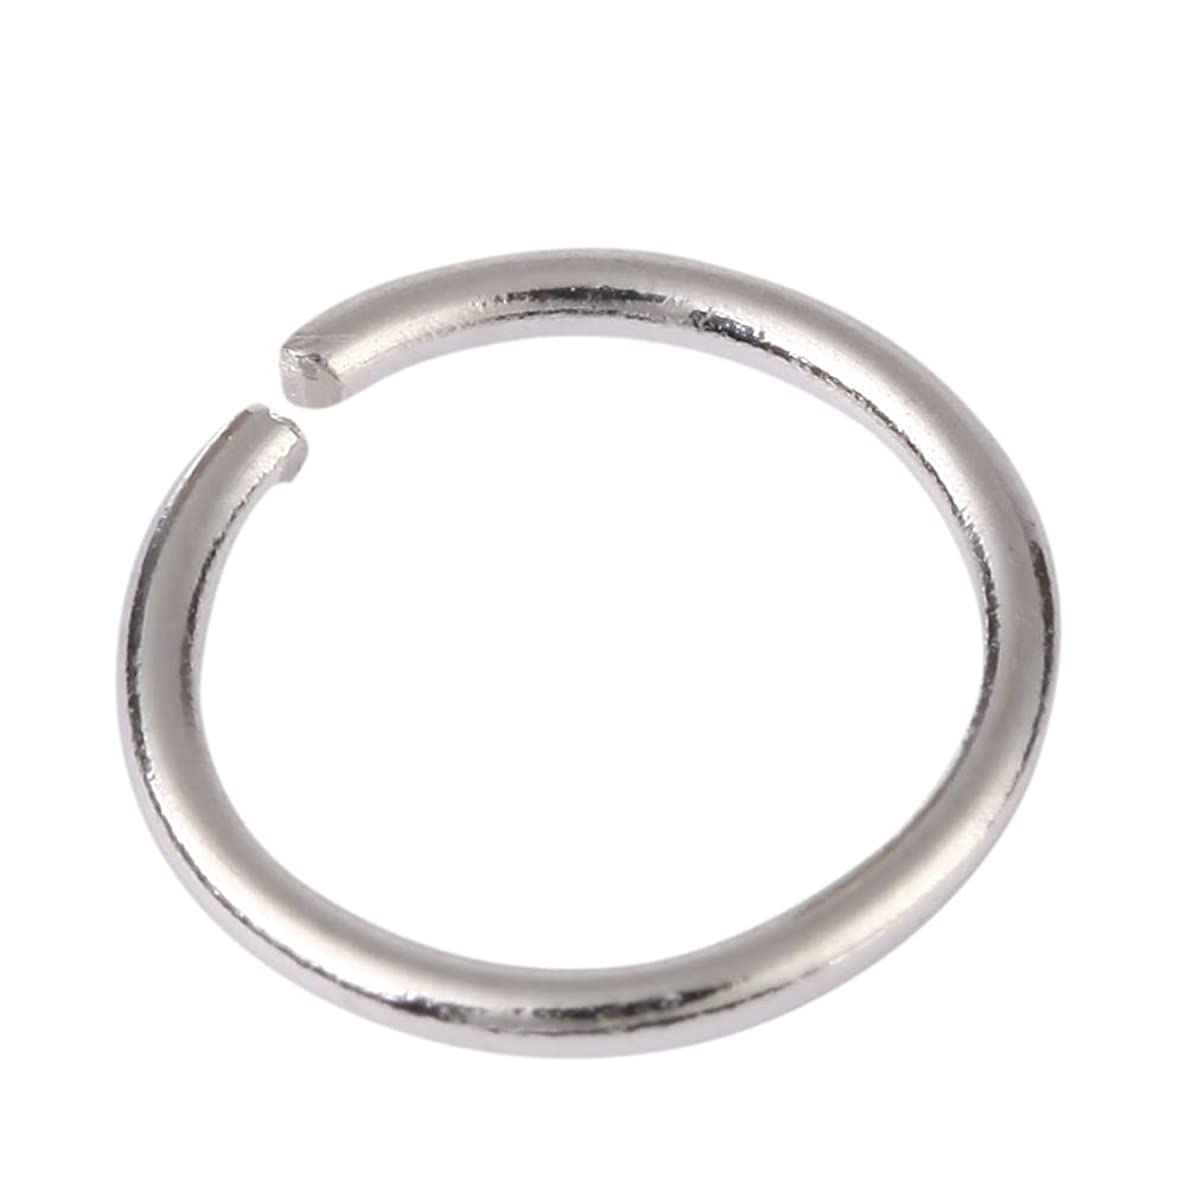 20pcs Genuine Sterling Silver Open Jump Rings 6mm Connector (Wire ~20GA or 0.8mm) for Jewelry Craft Making SS11